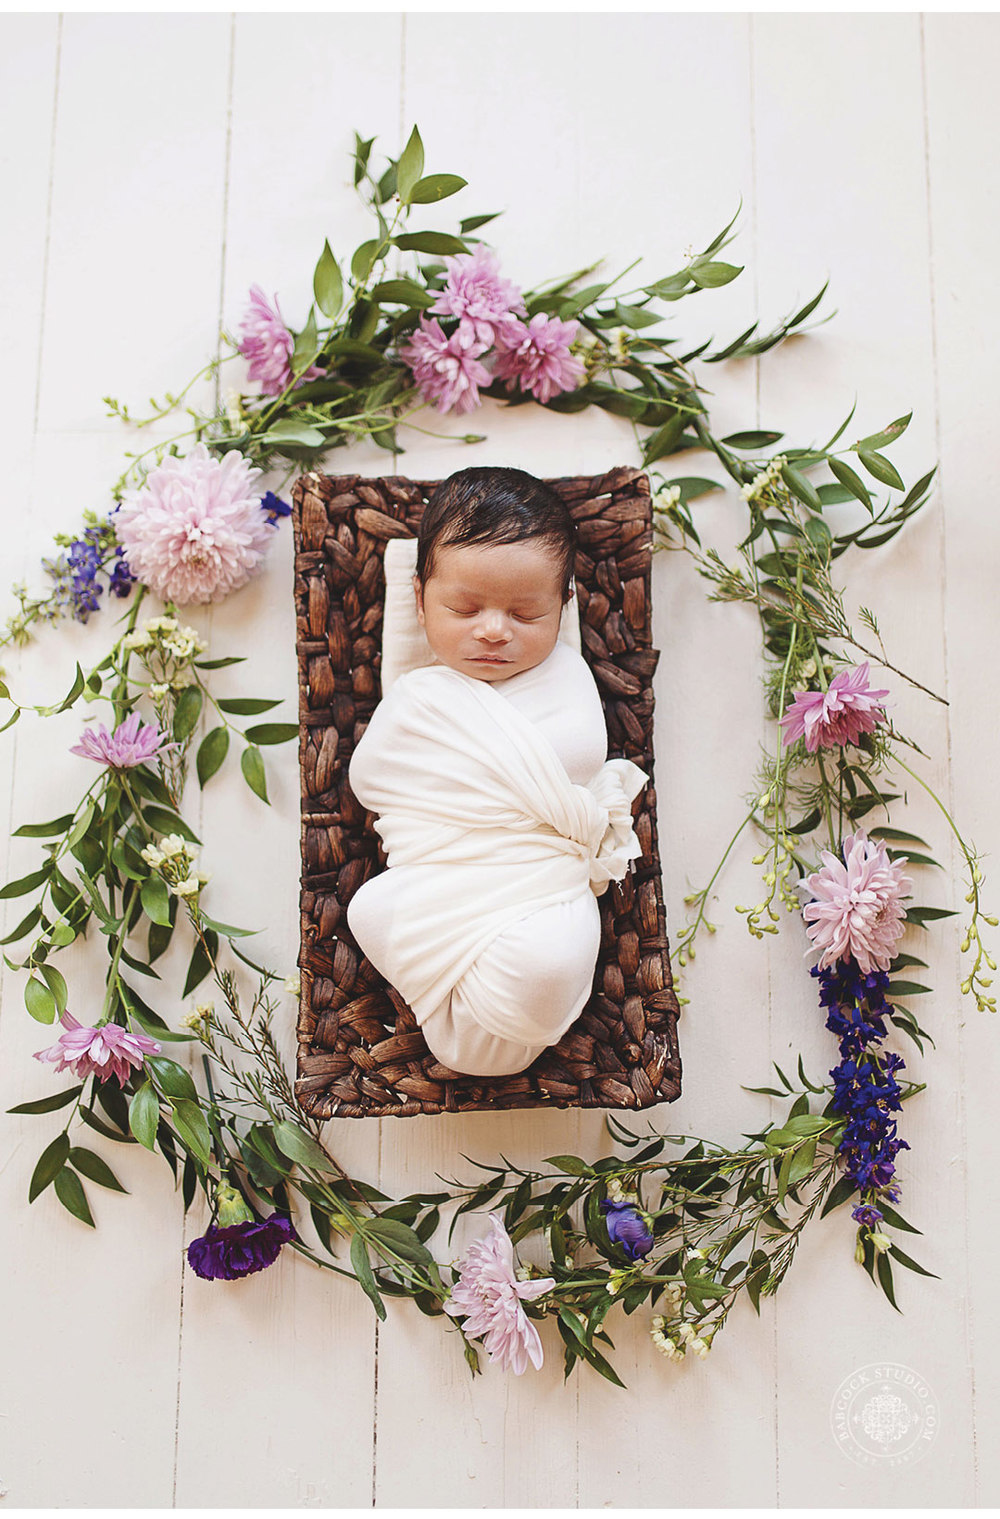 watras-newborn-bellbrook-photographer-children-.jpg